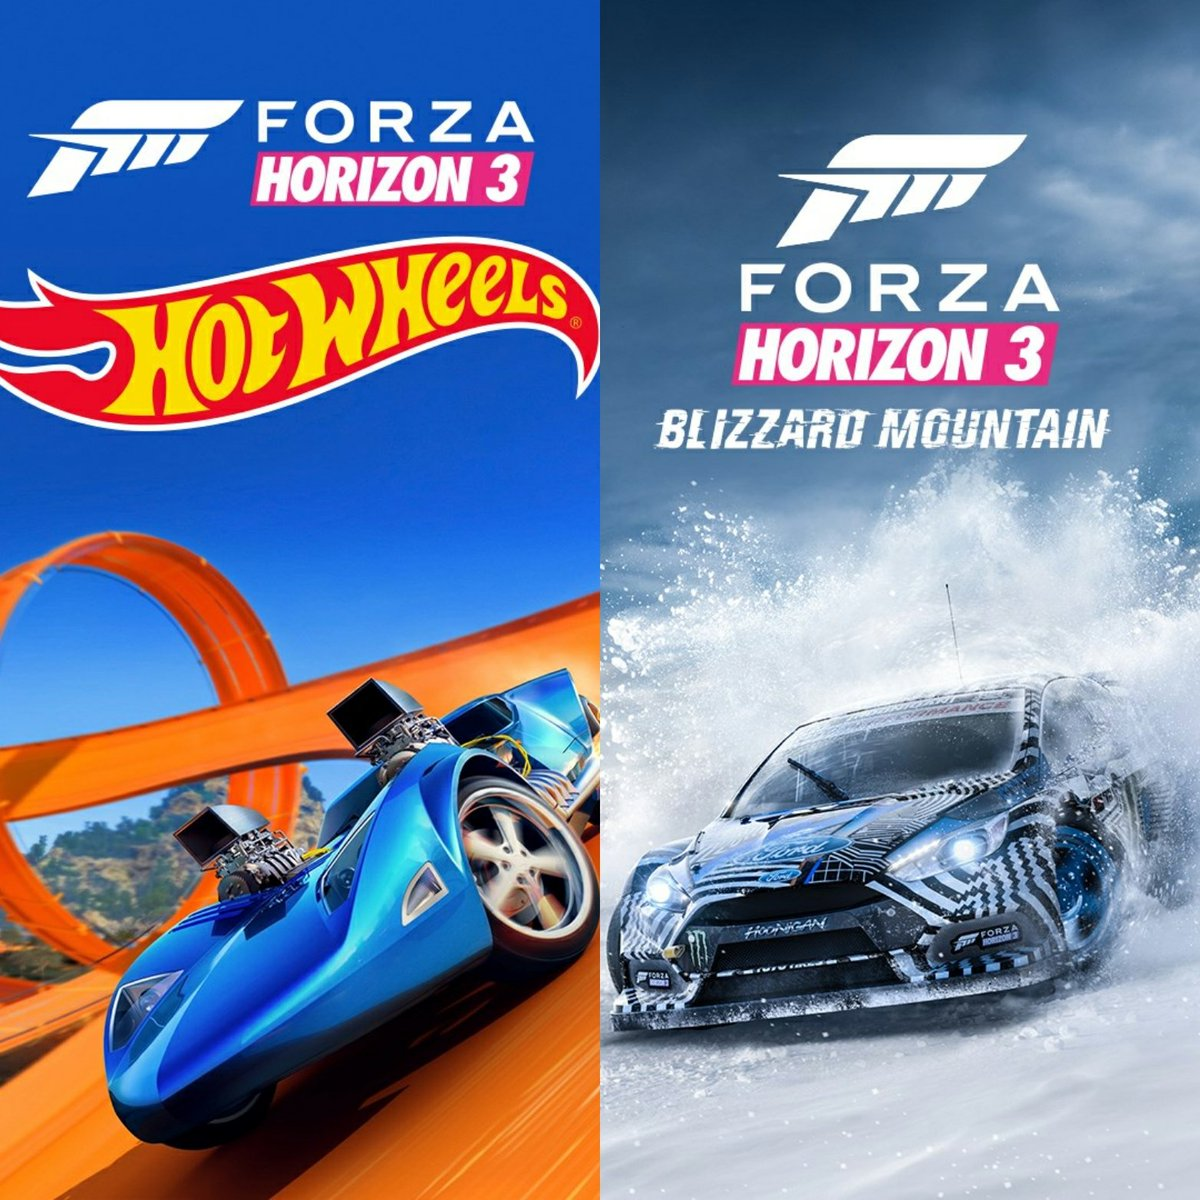 Join us tonight on https://t.co/QHA2RWa6F0 at 7pm AEST. The final week of Forza Horizon 3 before we move on to Forza Horizon 2  #blamewizard #wizard_wc #wizardfamily #forza #forzahorizon3 #fh3 https://t.co/Gpra8o4FvC